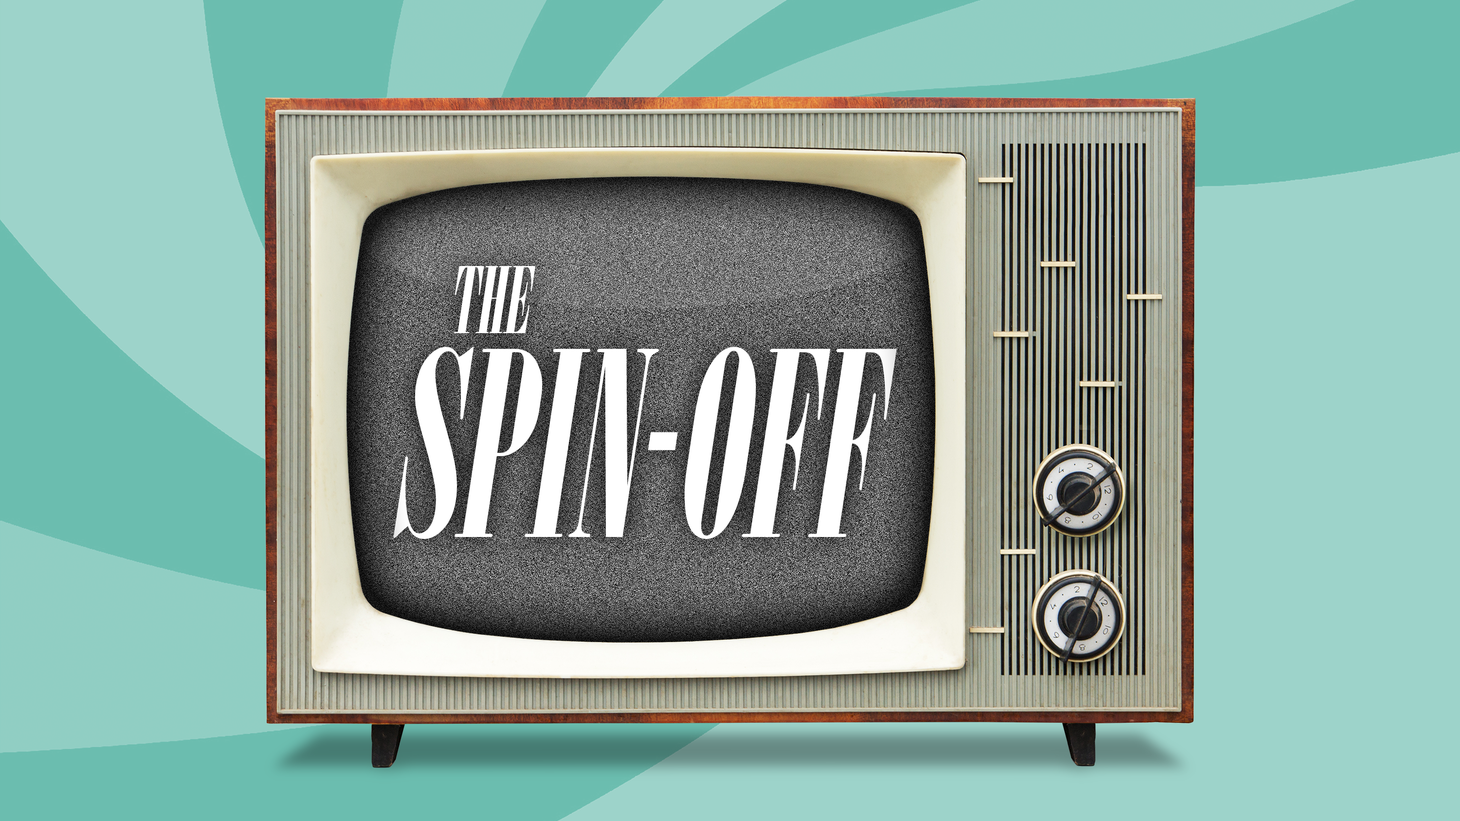 Long-time TV reporters are finding their beats now apply to politics as the new POTUS continues to be obsessed with ratings. And looking to the year ahead, will broadcast streaming services like CBS All Access be able to break through?